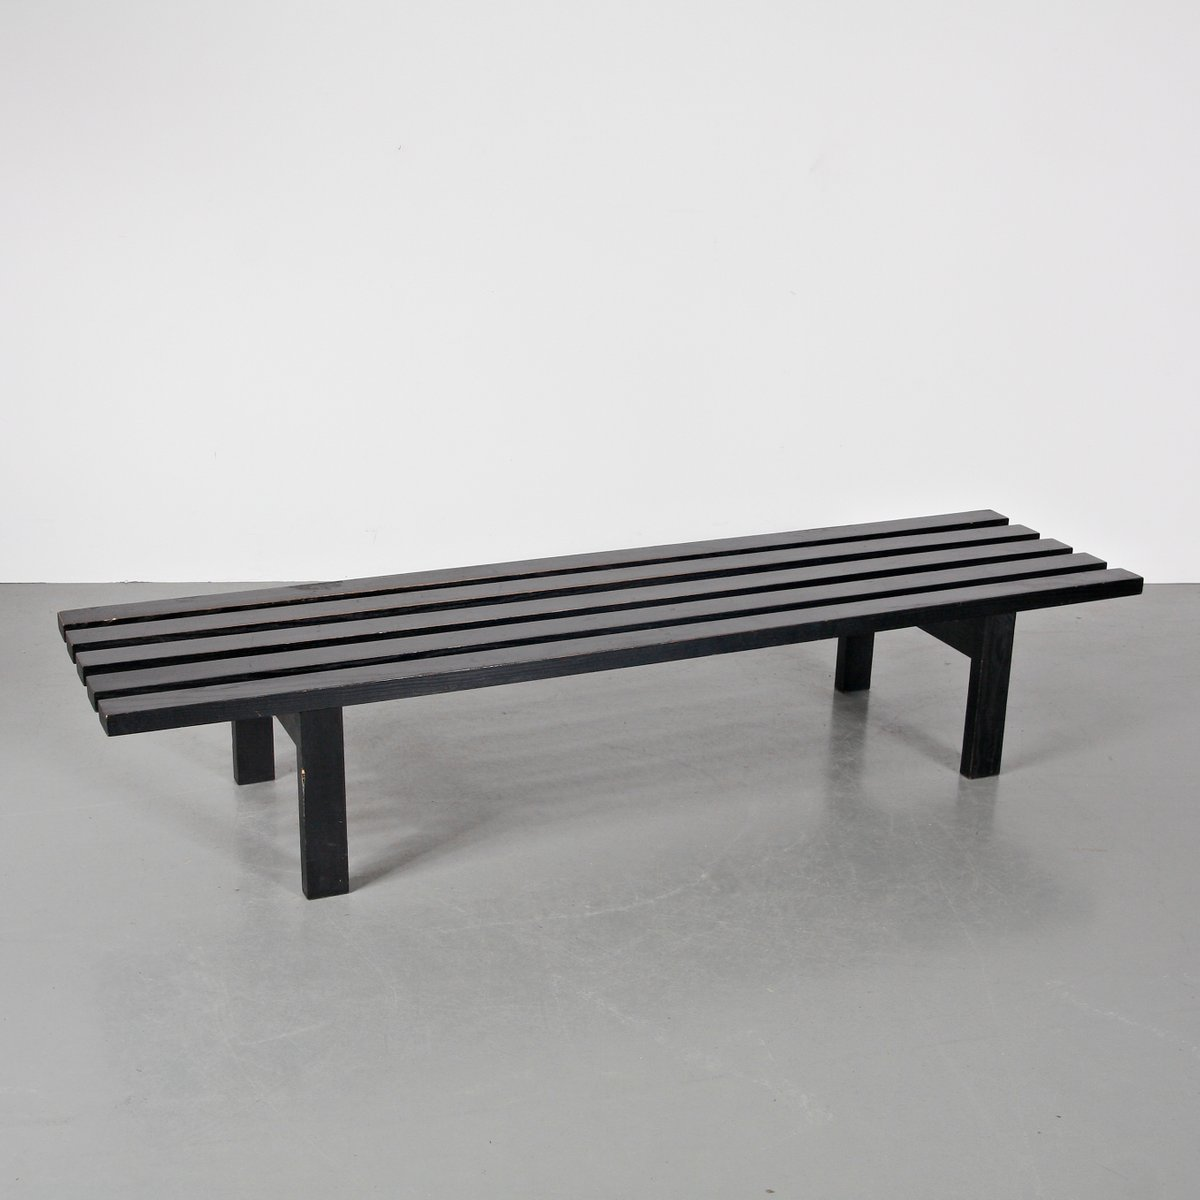 Dutch Long Wooden Bench By Martin Visser For Spectrum Circa 1950 For Sale At Pamono